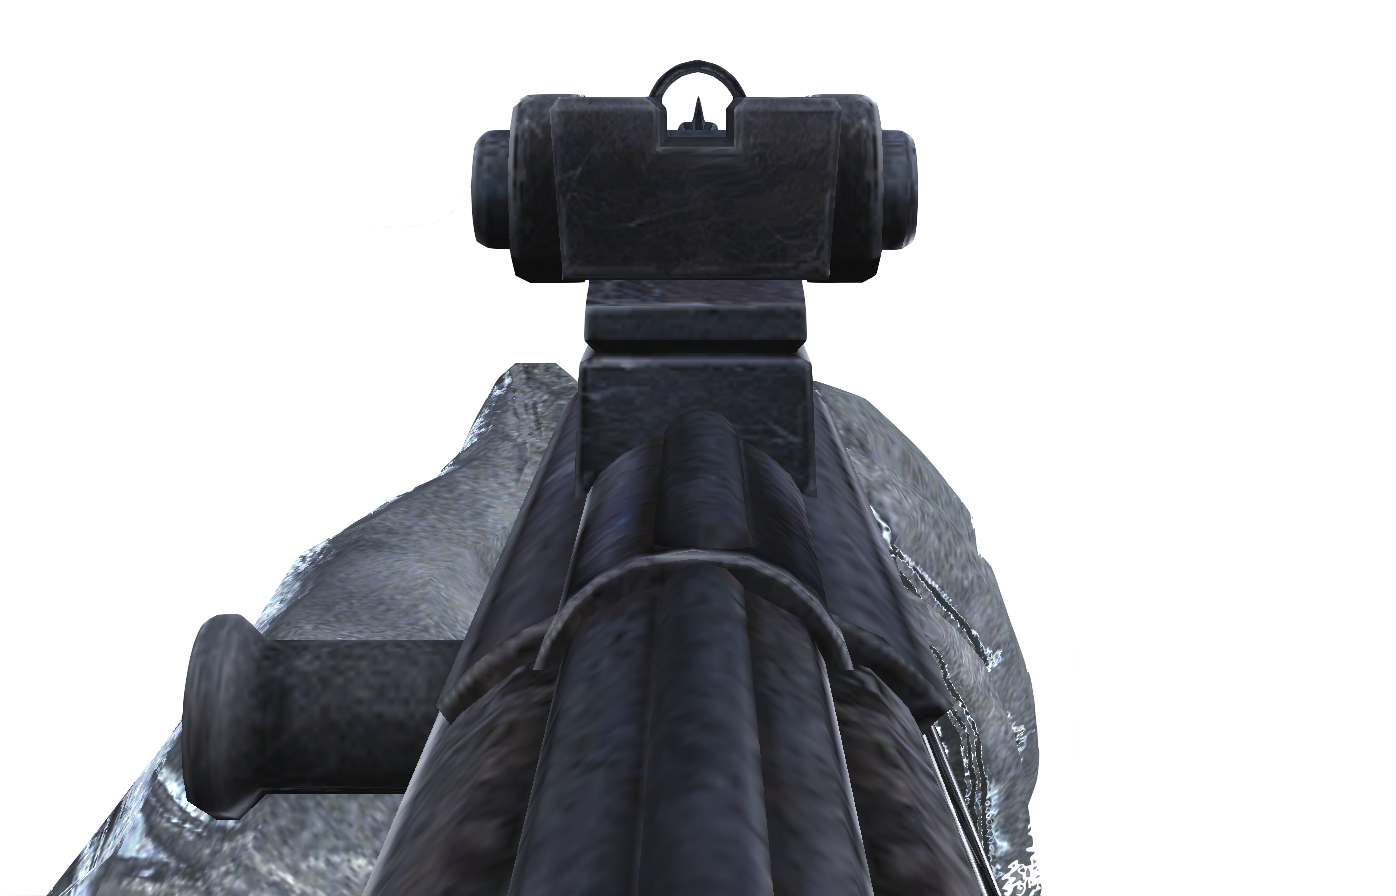 File:MP44 Iron Sights CoD4.png